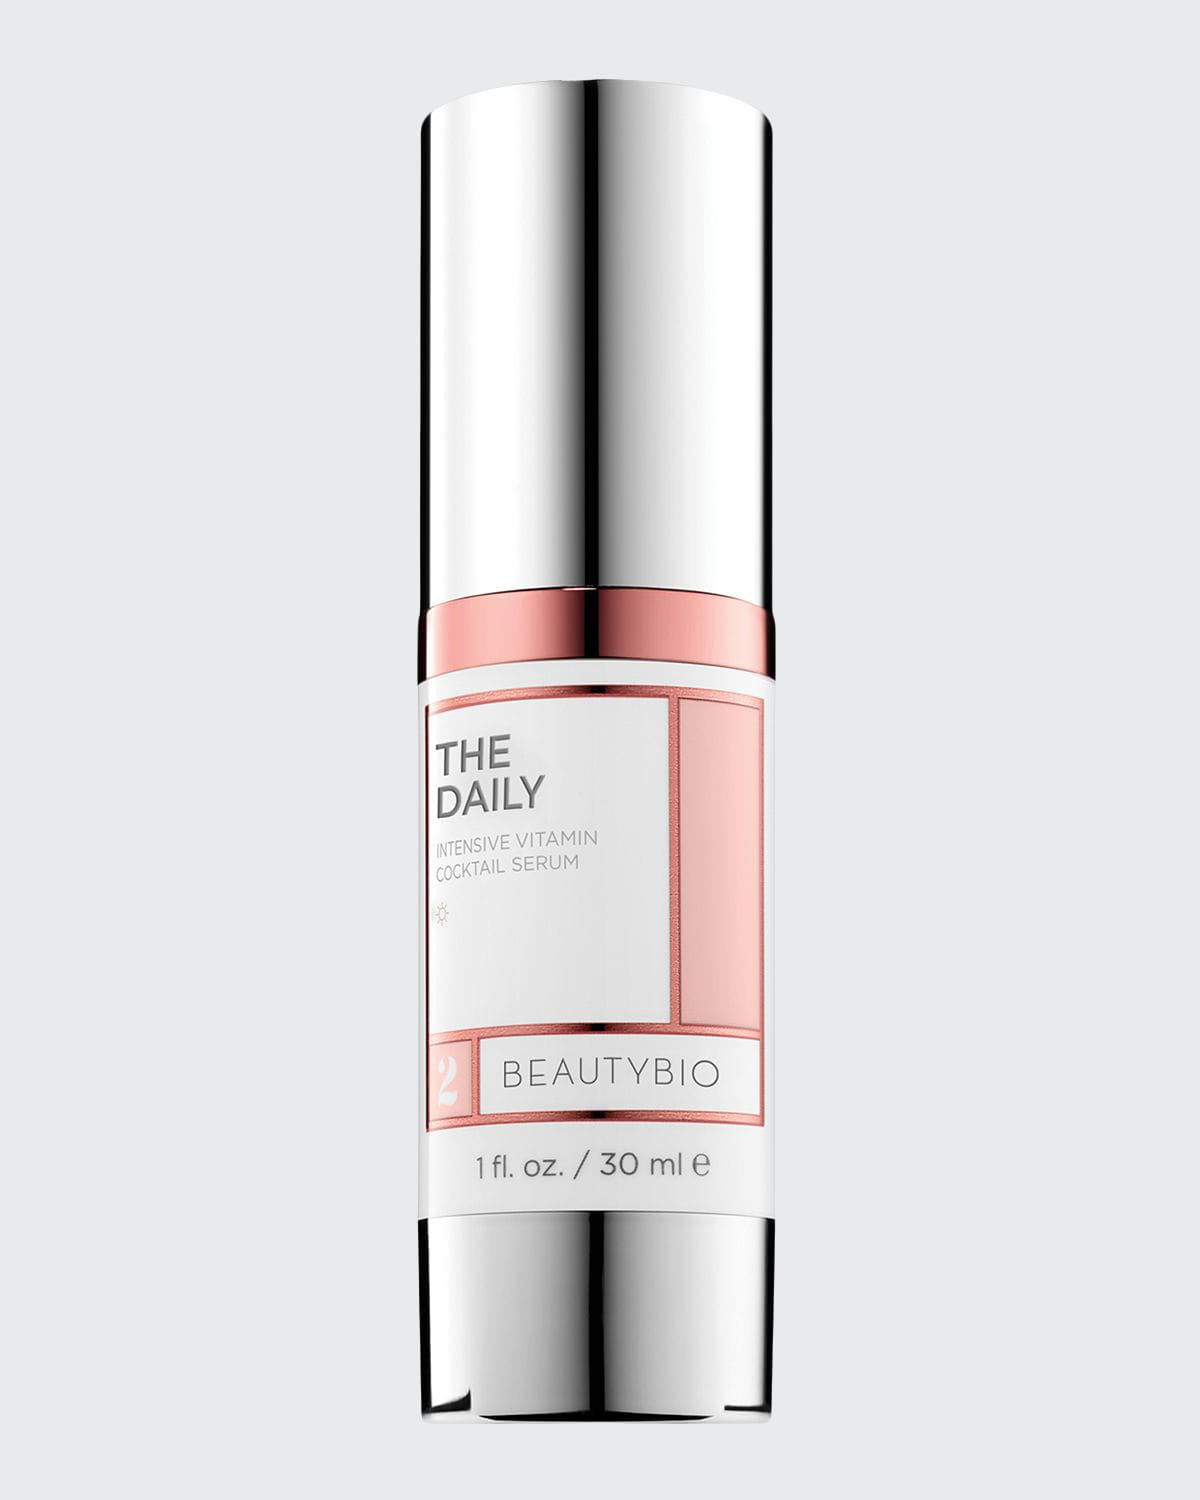 THE DAILY Intensive Vitamin Cocktail Serum